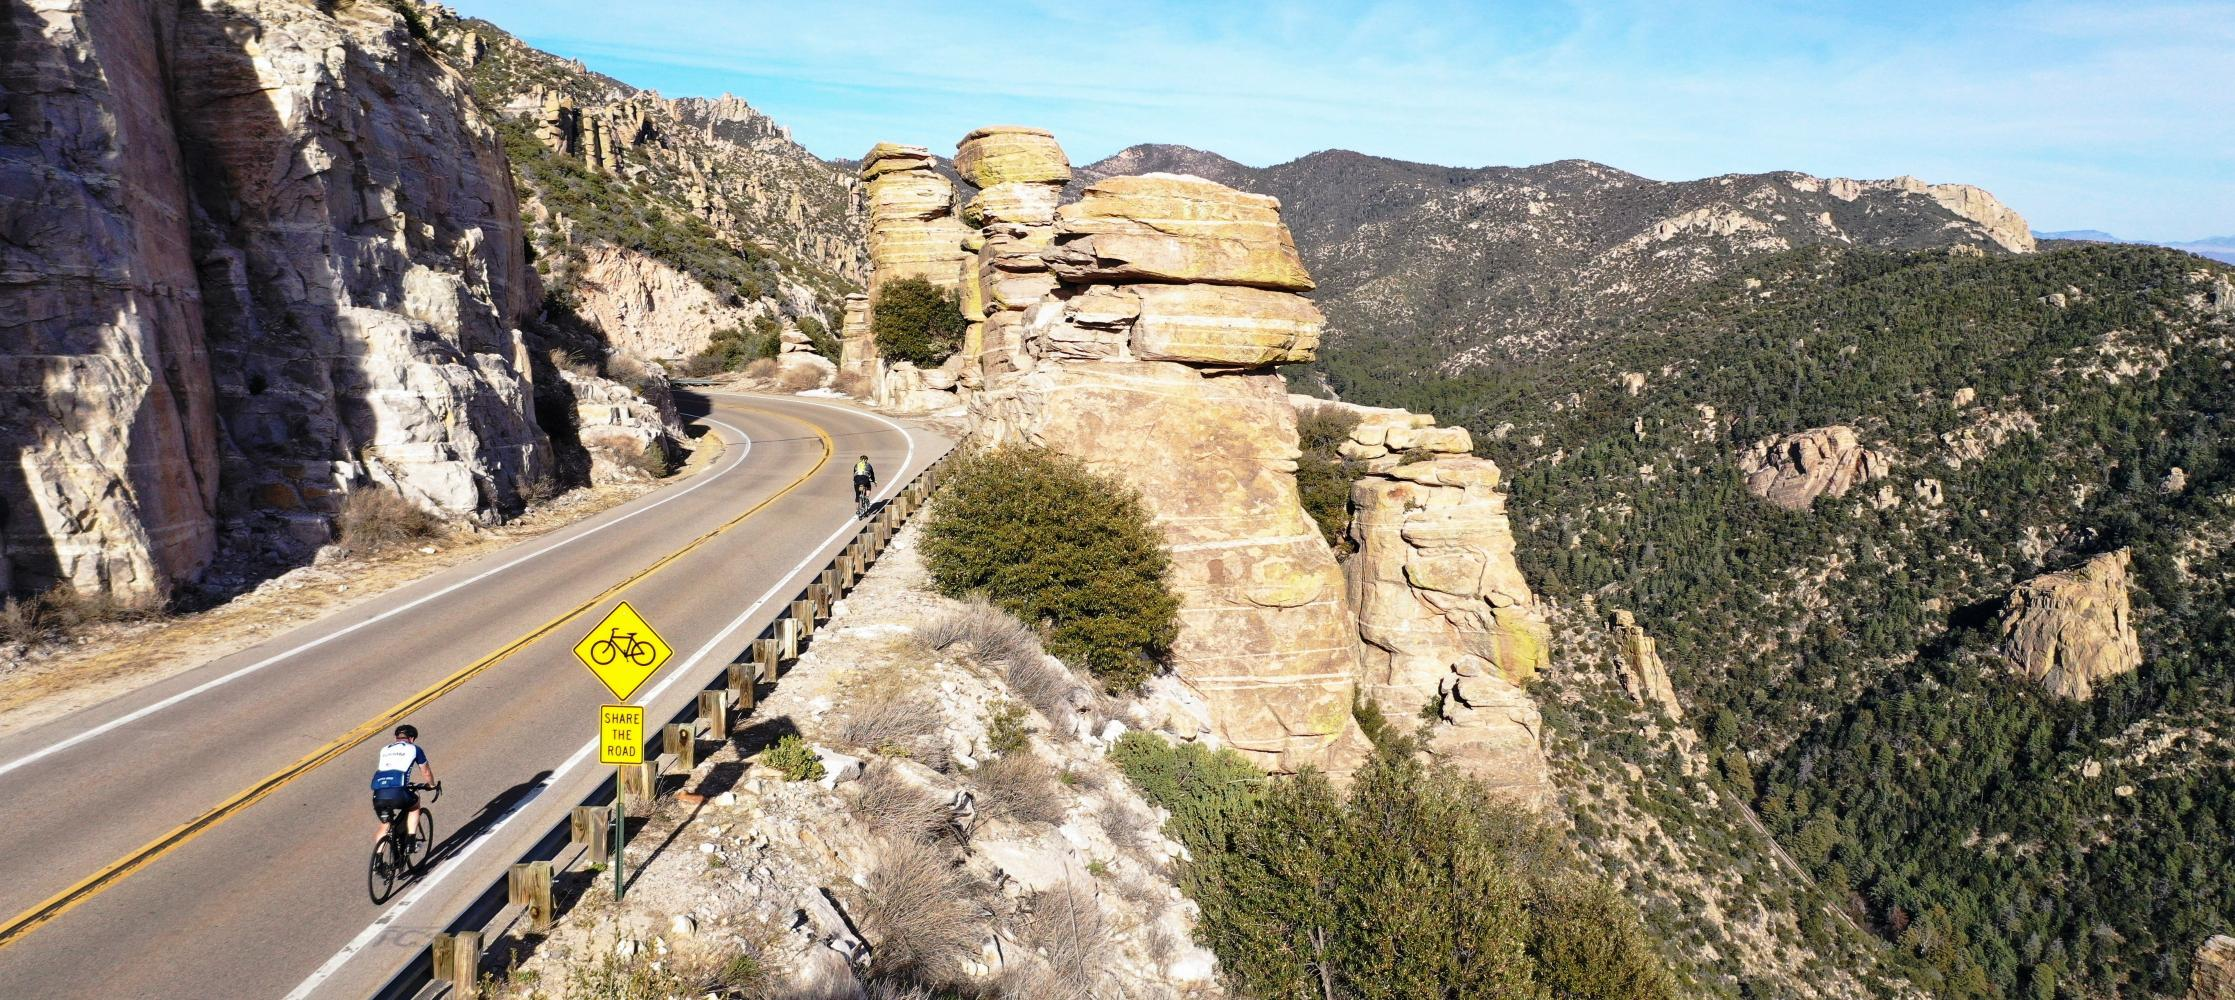 Mt. Lemmon - PJAMM Cycling